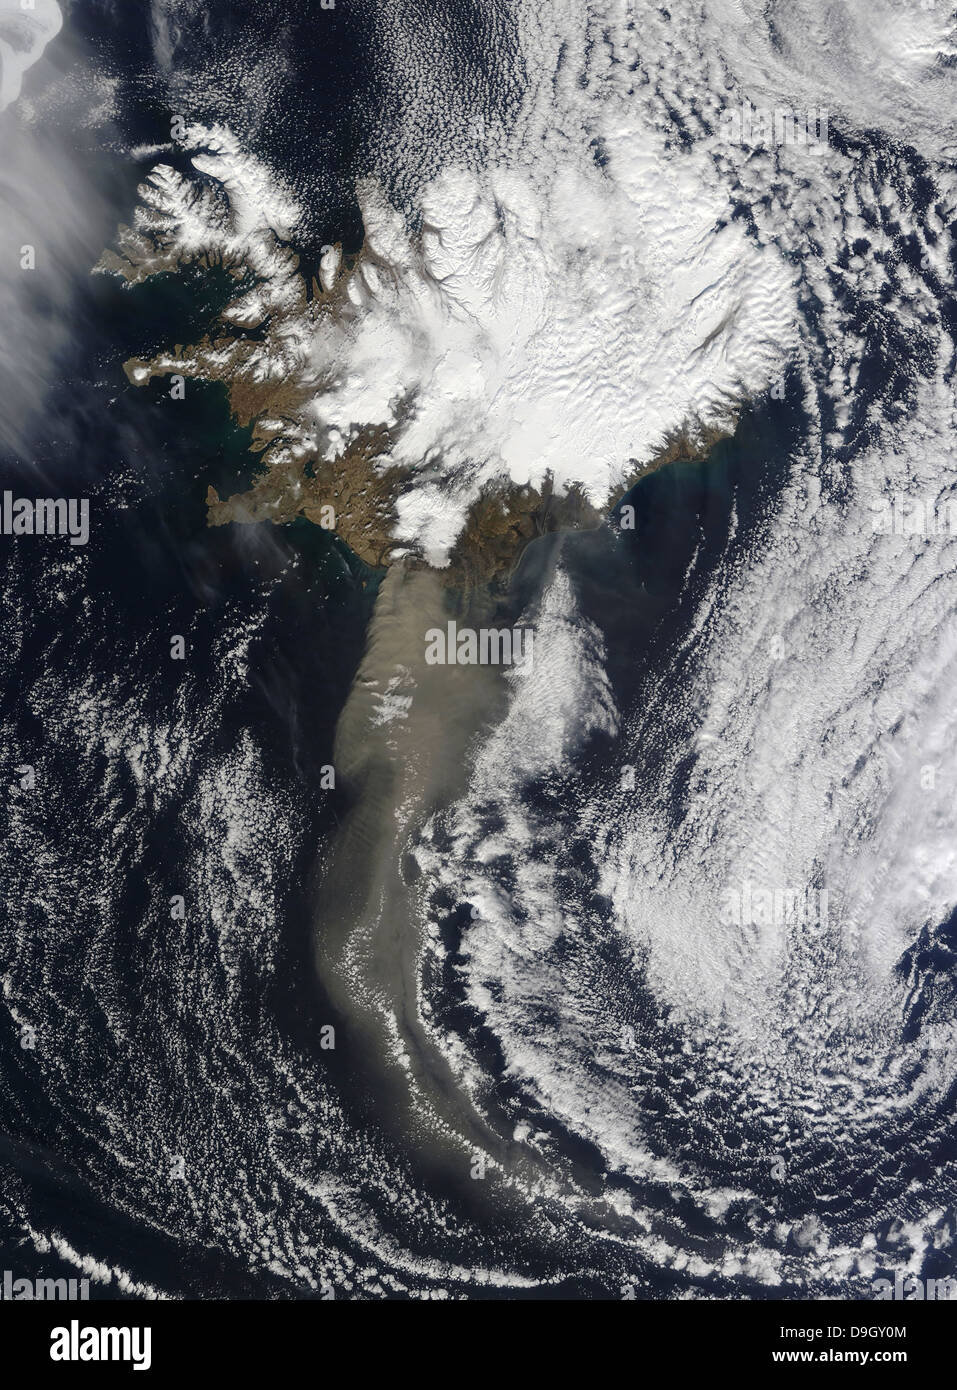 A cloud of ash from Iceland's Eyjafjallajokull volcano extends over the ocean. - Stock Image